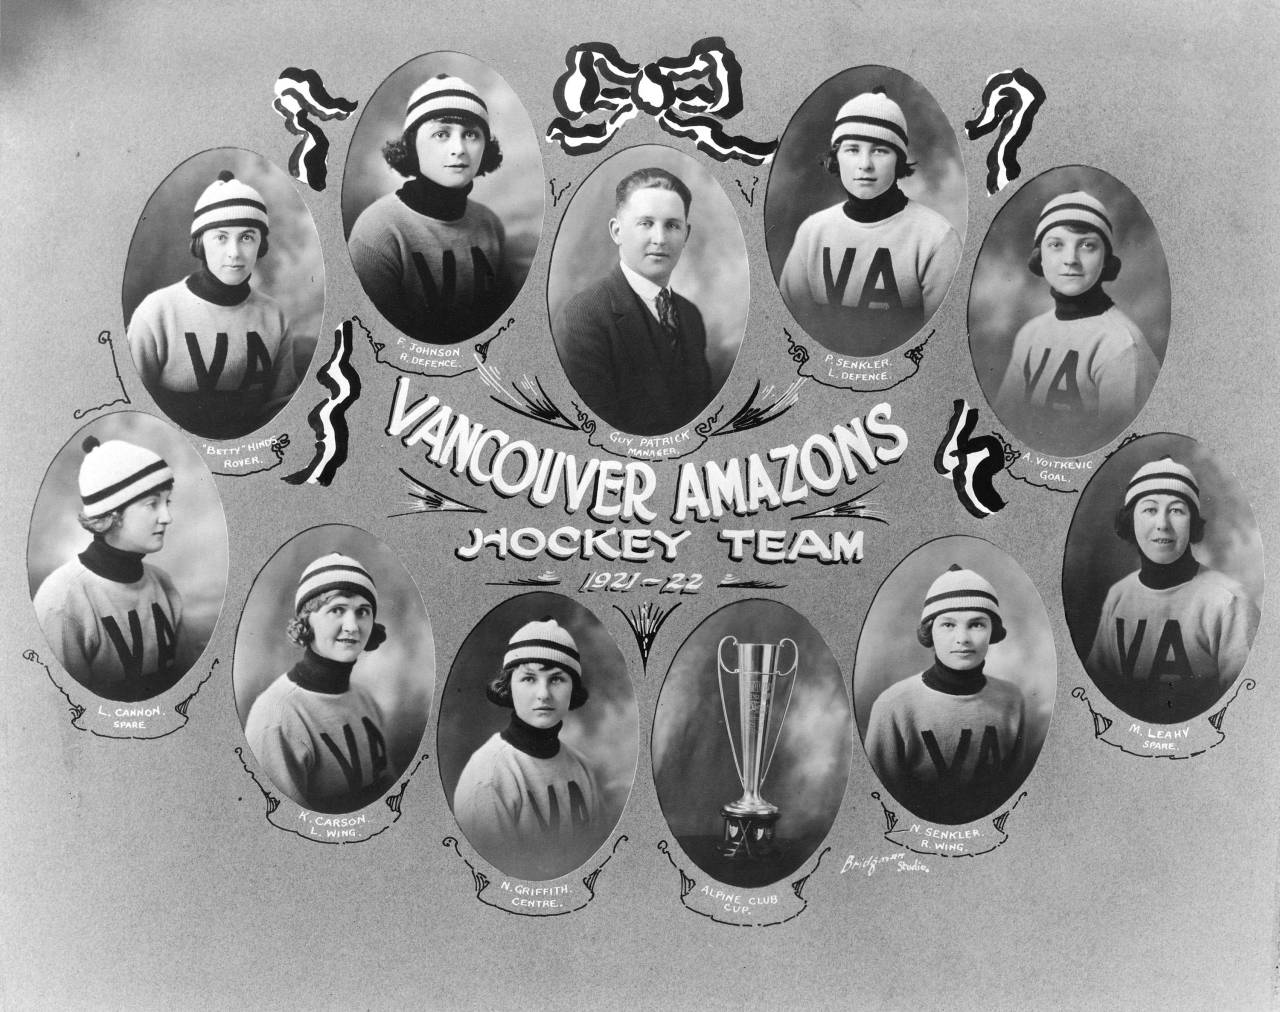 Vancouver Amazons, 1922 The Vancouver Amazons were based out of the Denman Arena in the West End, where women's hockey was especially popular because a lot of single working women lived in that neighbourhood. After beating the Calgary Regents in Banff in 1922, the Amazons won the Alpine Cup, making them the women's hockey champions of Western Canada. Source: City of Vancouver Archives #Sp P108